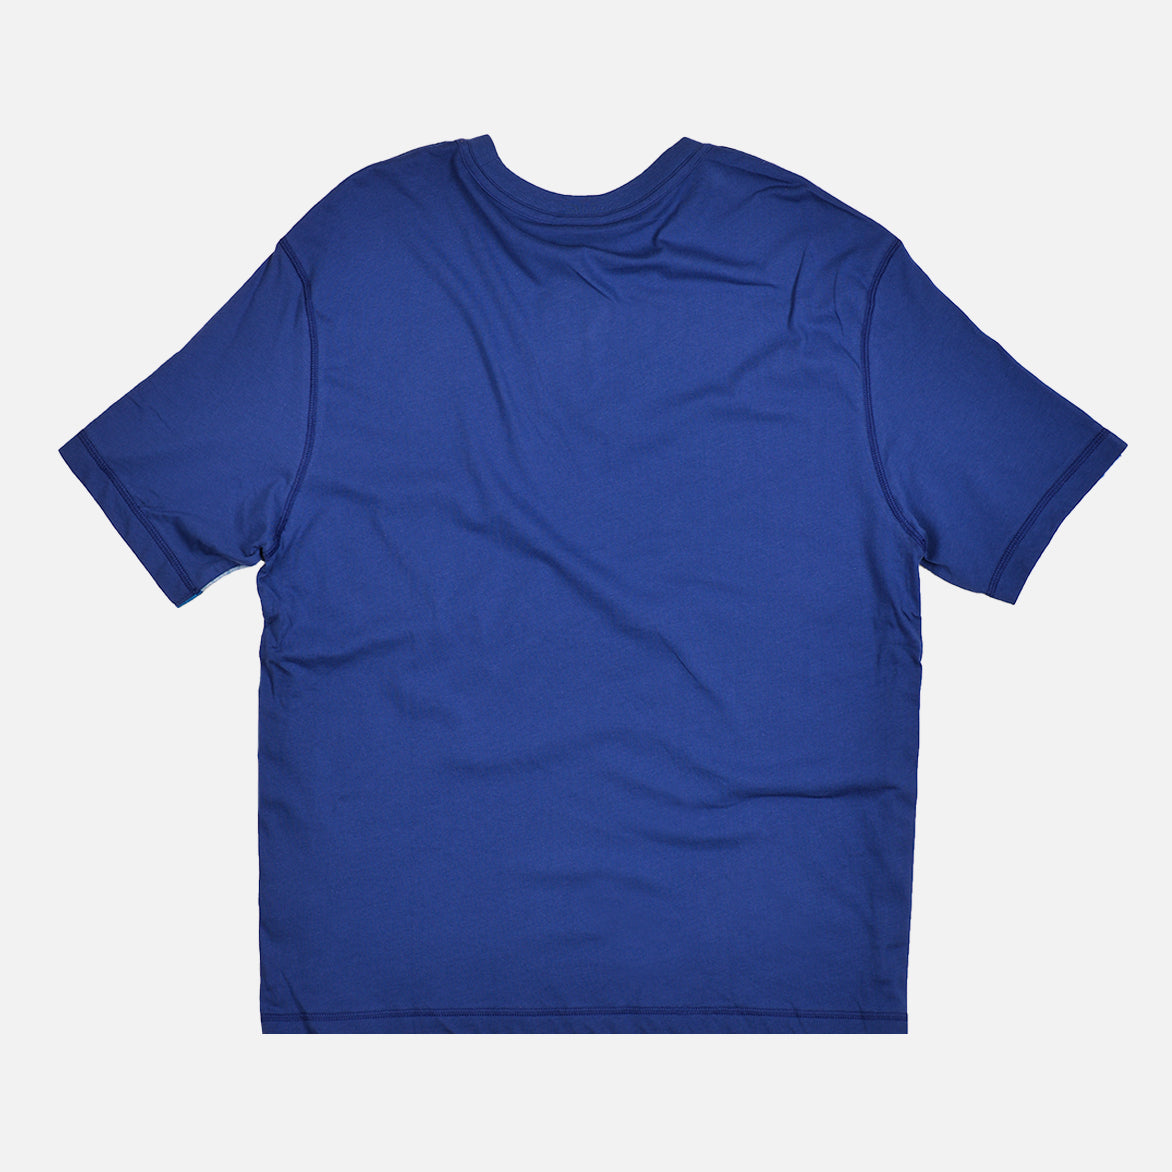 NSW COLOR BLOCK KNIT TEE - DEEP ROYAL BLUE / BLACK